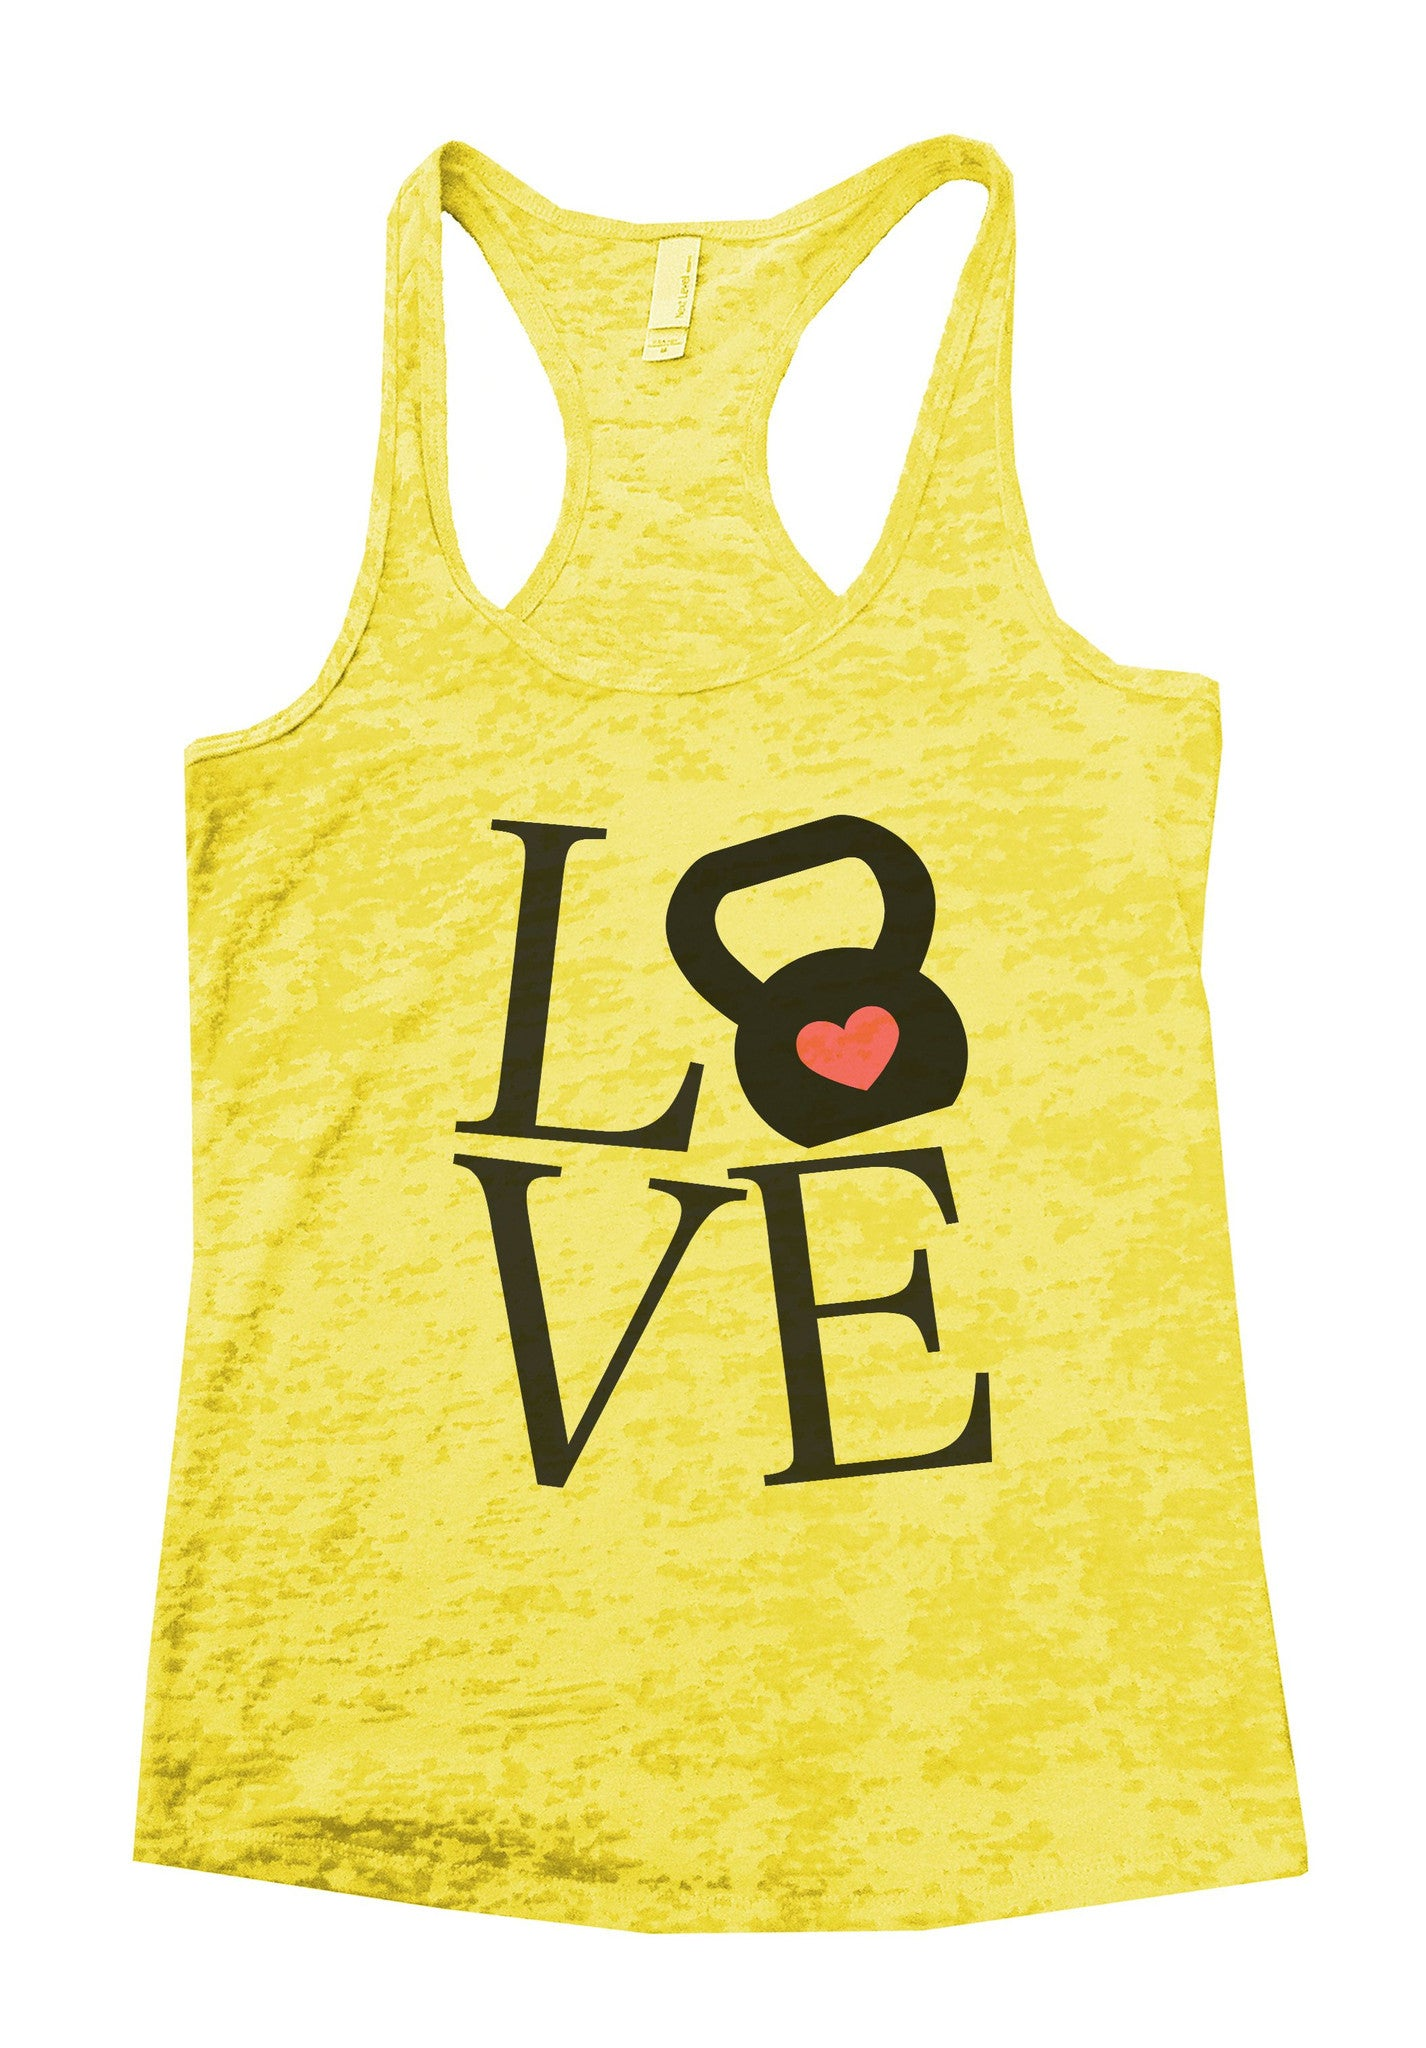 Love Burnout Tank Top By BurnoutTankTops.com - 727 - Funny Shirts Tank Tops Burnouts and Triblends  - 6